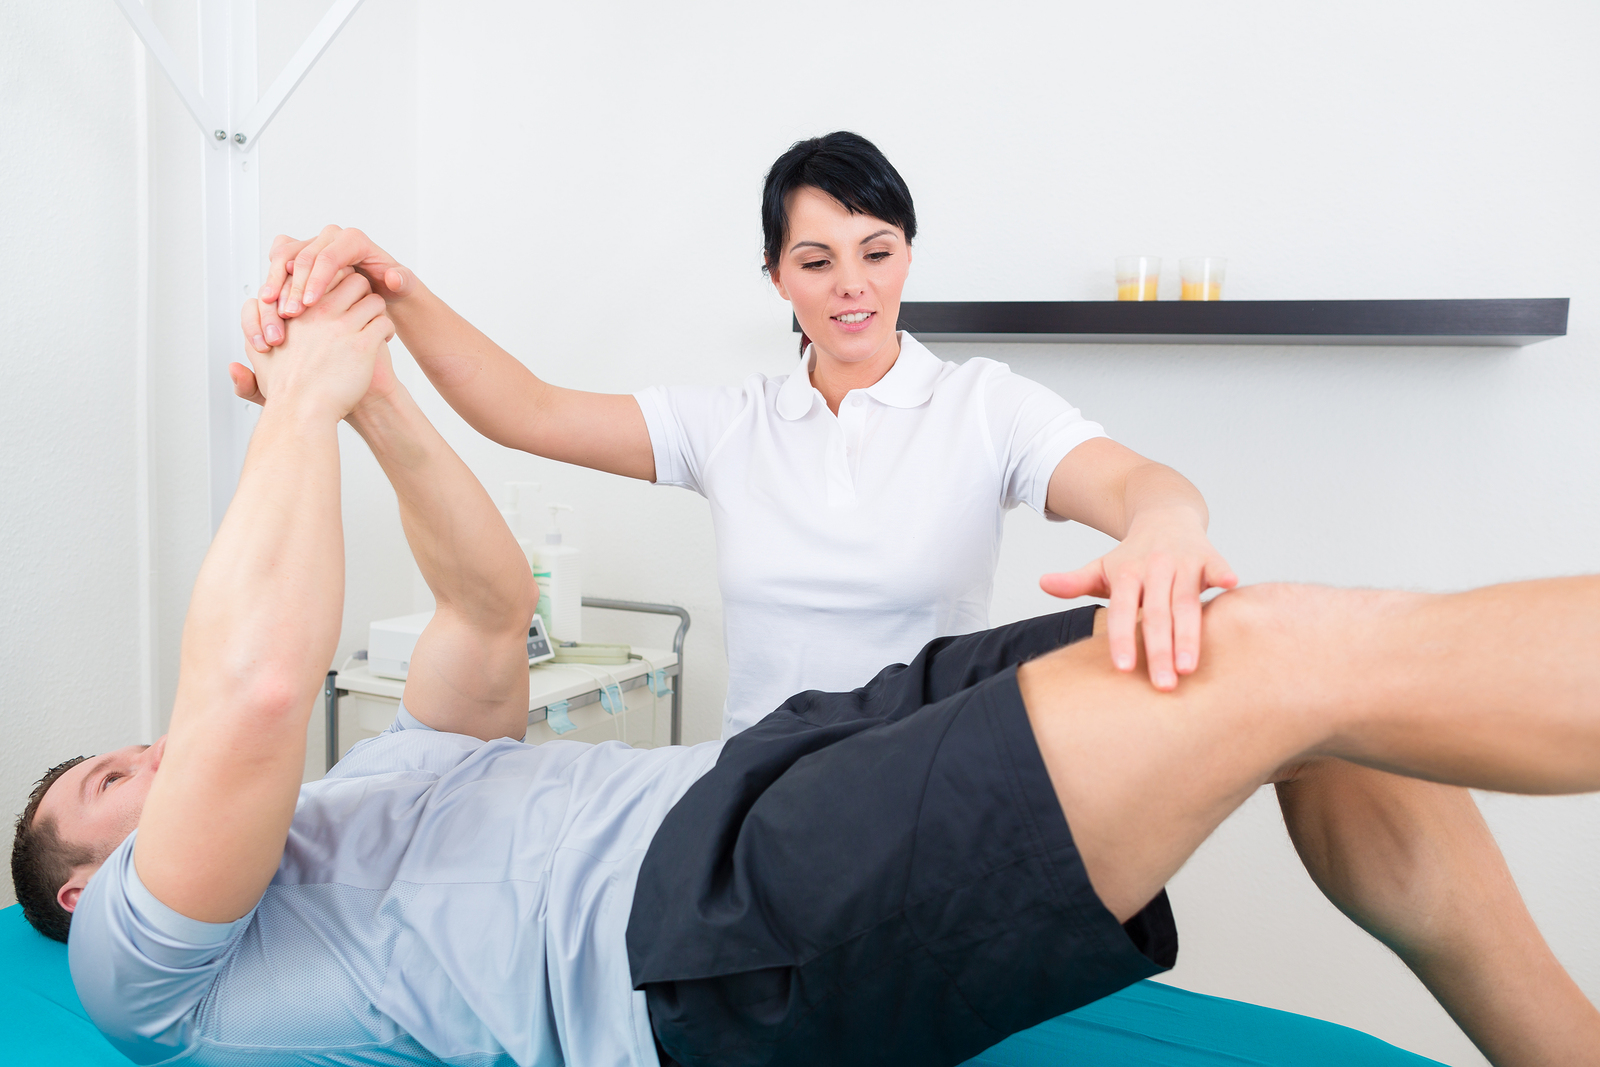 Physiotherapy is a science-based profession which aims to treat people holistically. It can help you at any stage in your life and covers a very broad range of conditions including: - *sports injuries*chronic pain*back or neck pain*shoulder pain such as frozen shoulder*sciatica*osteoarthritis and rheumatoid arthritis*repetitive strain injuries such as tennis elbow*long term conditions such as Parkinson's Disease or Multiple Sclerosis*respiratory disorders such as COPD or cystic fibrosis*antenatal and postnatal conditions*headaches Stress and anxiety*and much more